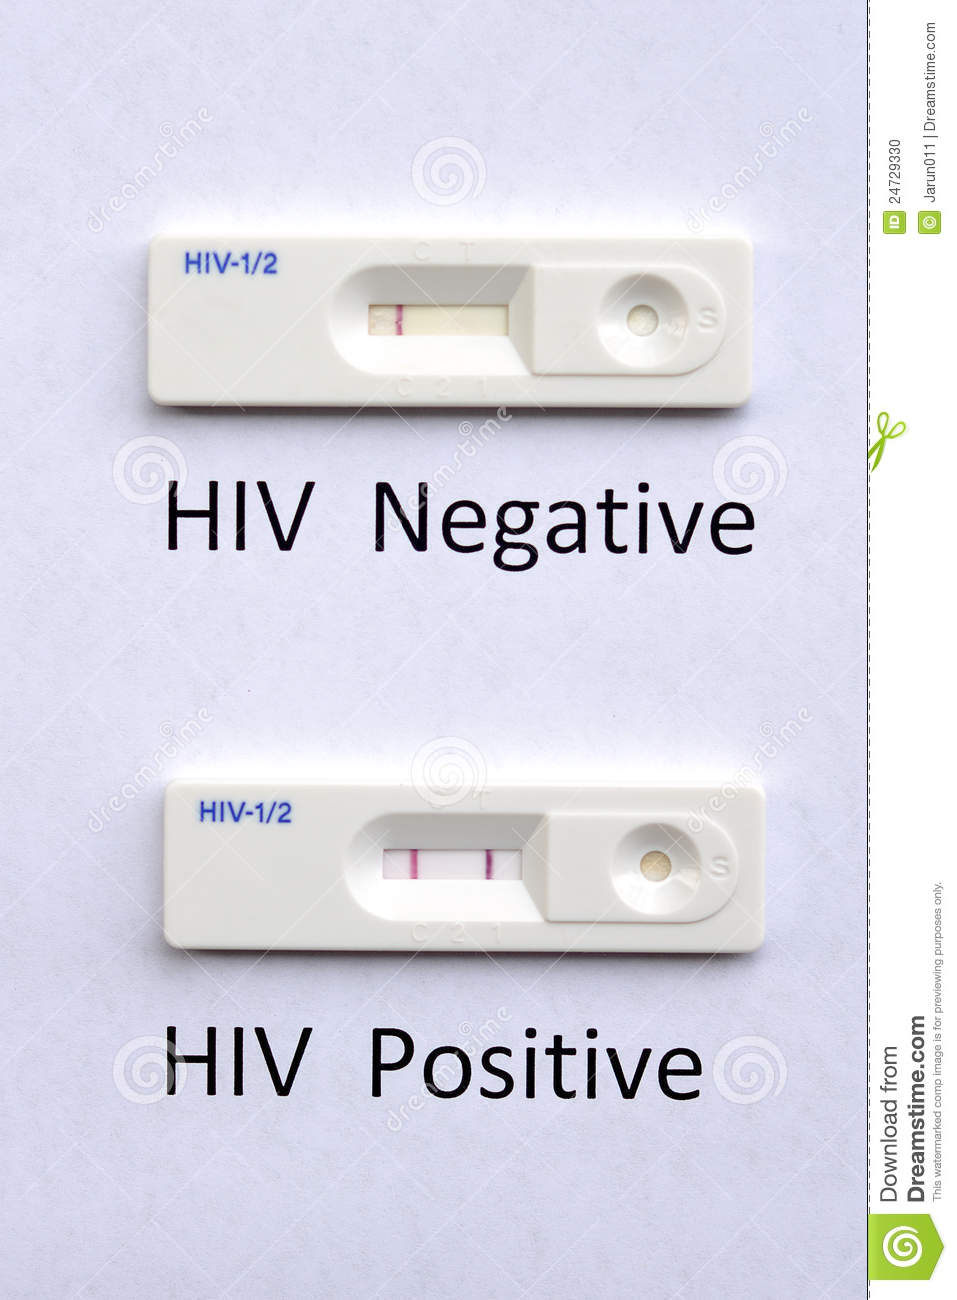 Dating someone hiv positive message boards